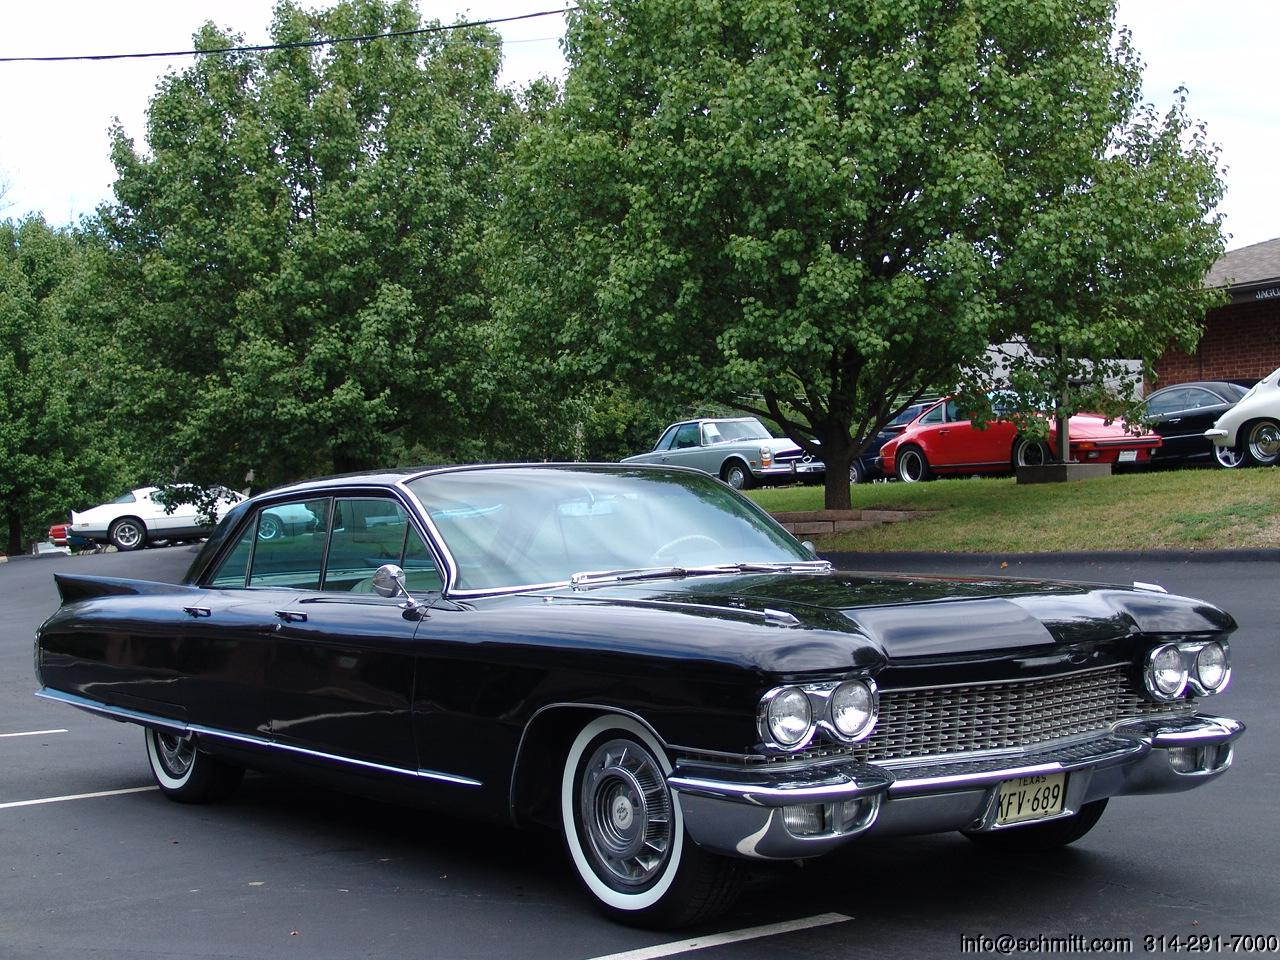 1960 Cadillac Brougham This Is Body 66 Of The 101 Built